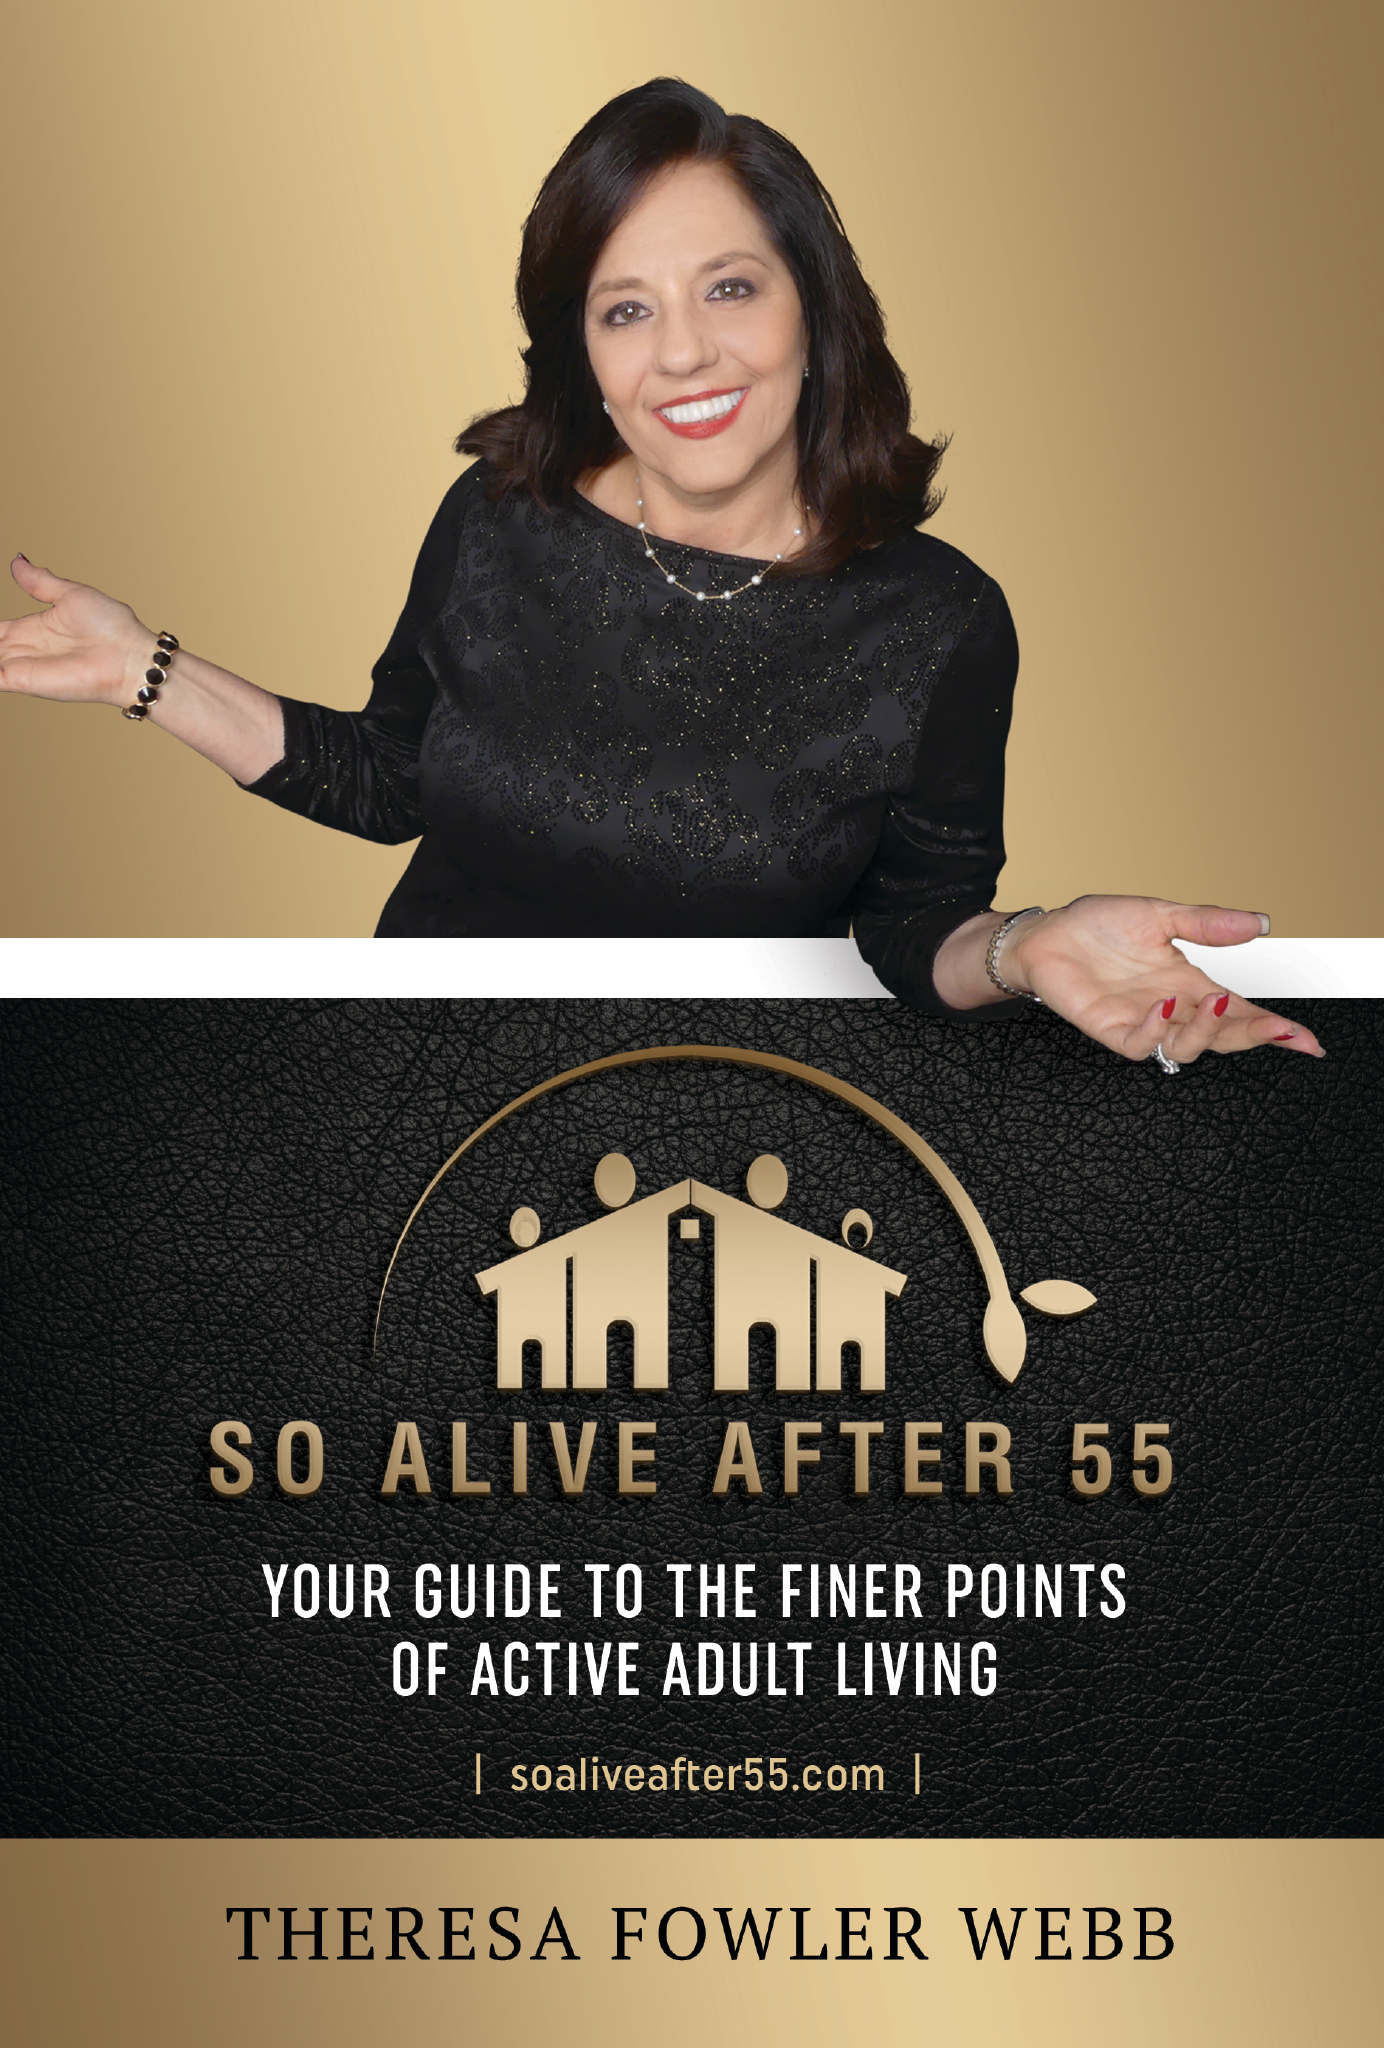 So Alive After 55 - Your Guide To The Finer Points Of Active Adult Living.